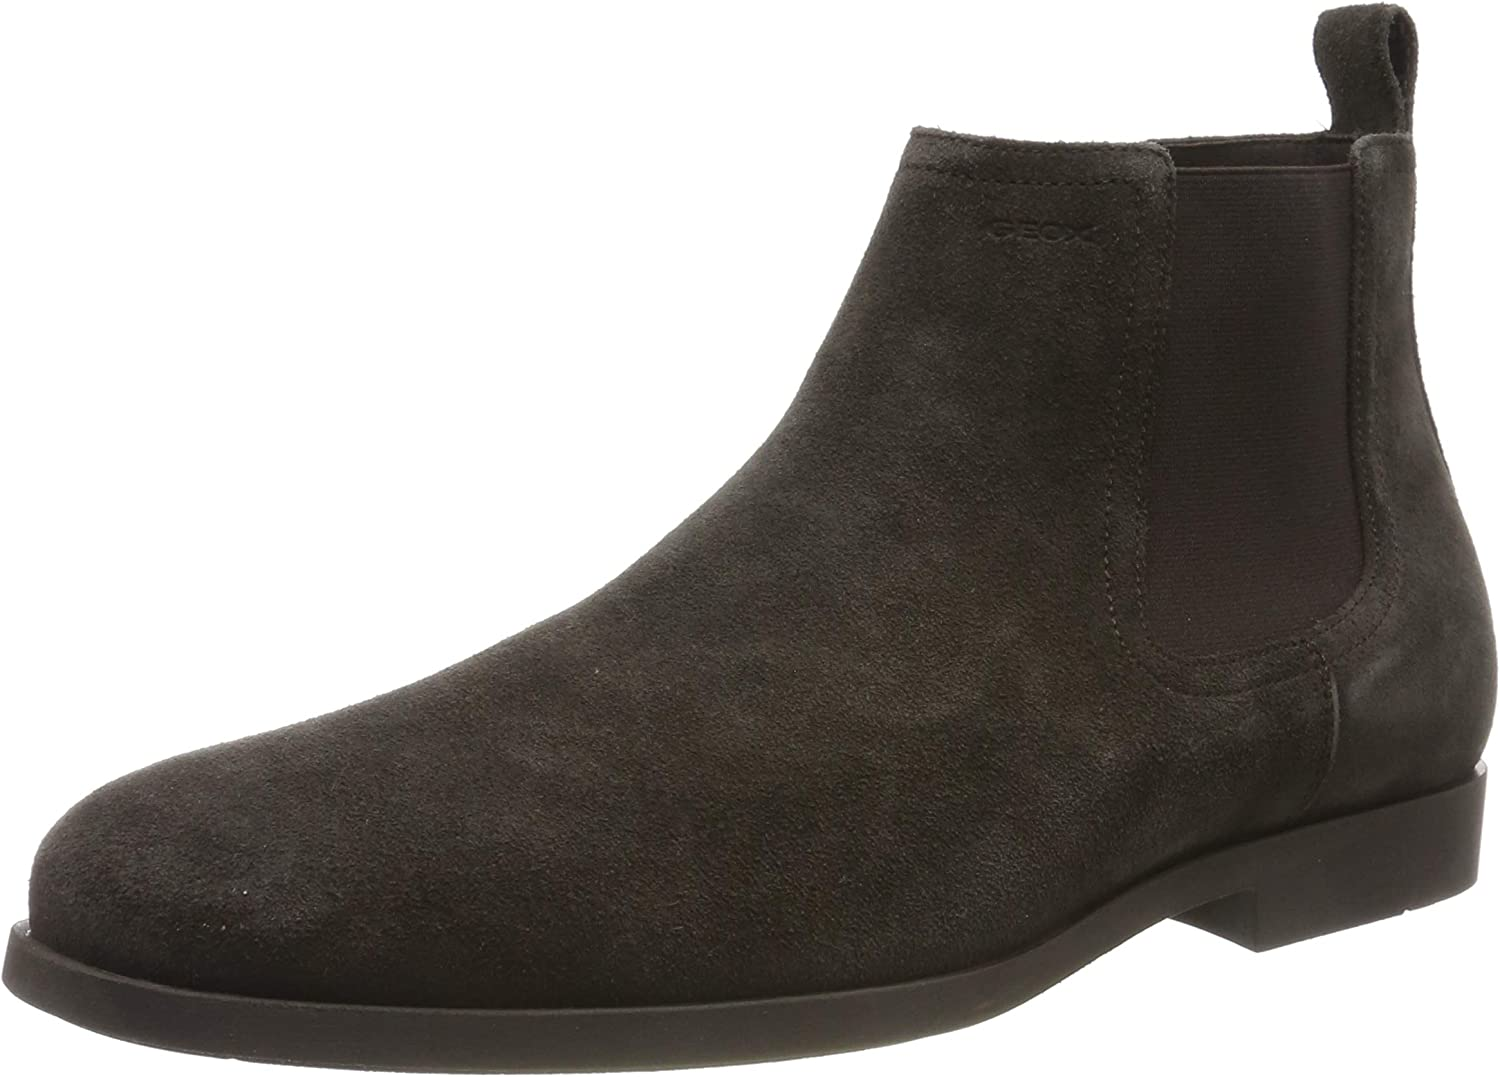 Geox Men's Challenge the lowest price of Outlet ☆ Free Shipping Japan Ankle Boots